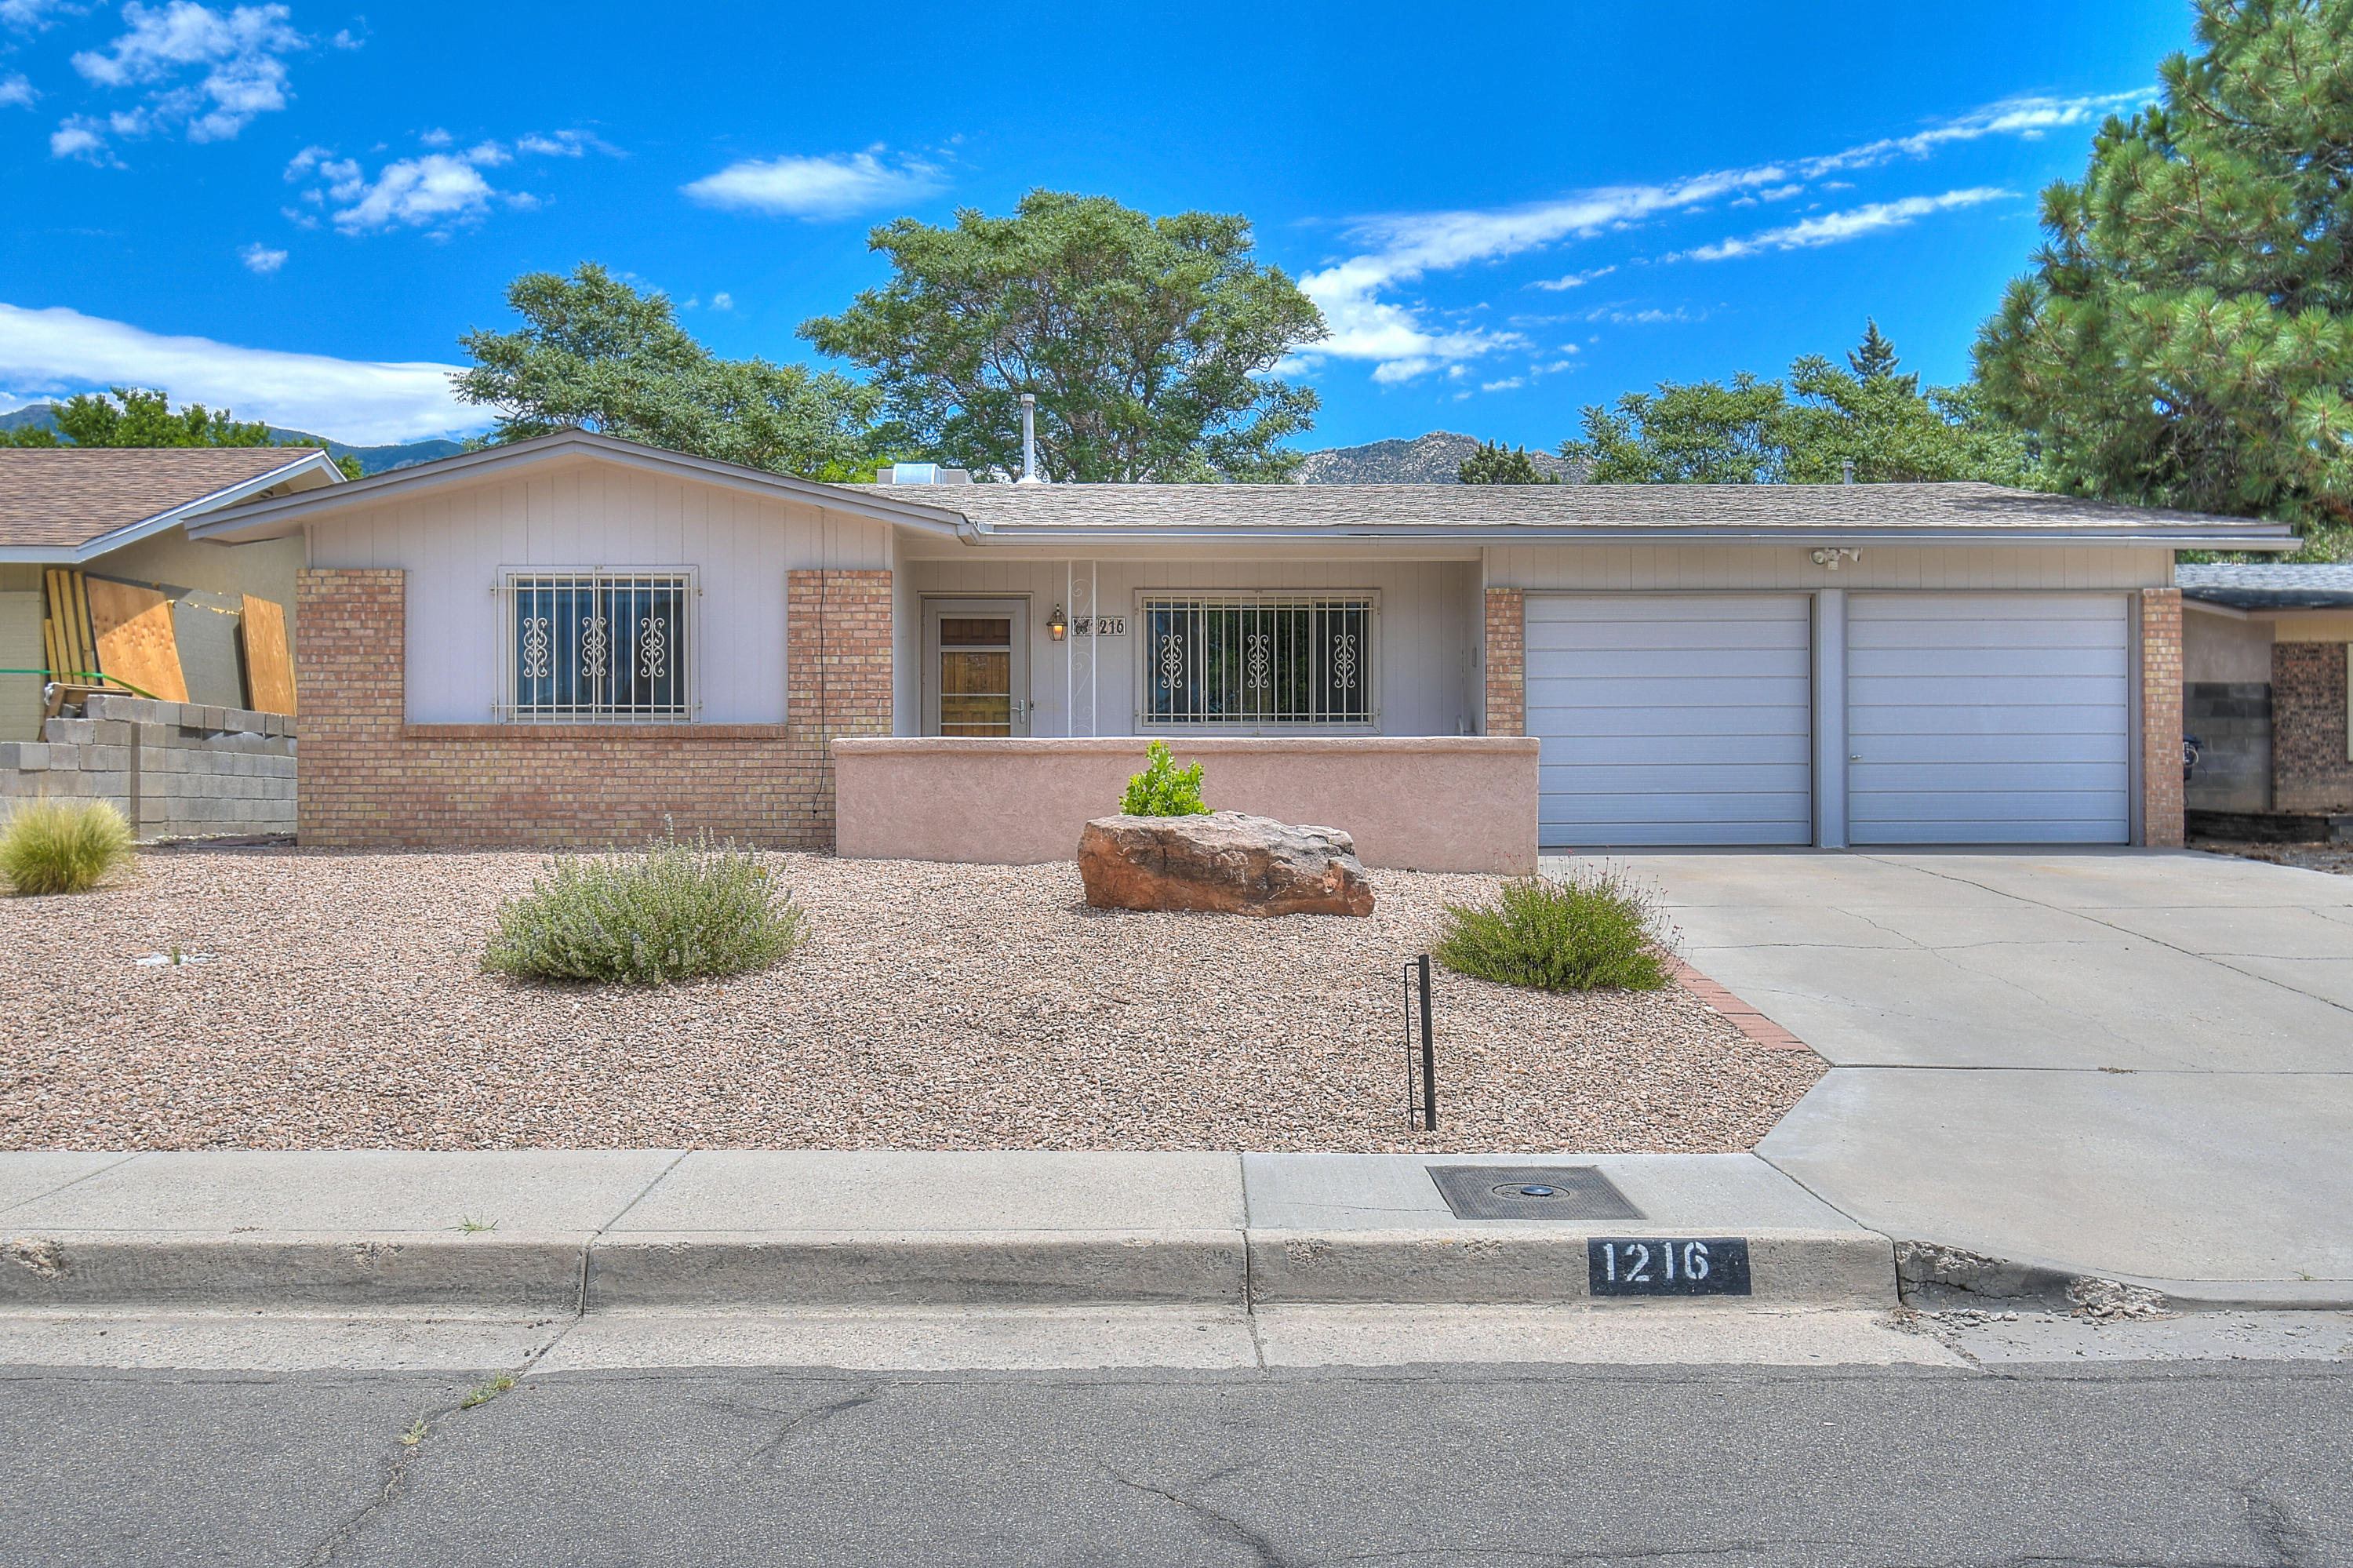 1216 WILLYS KNIGHT Drive, Albuquerque NM 87112